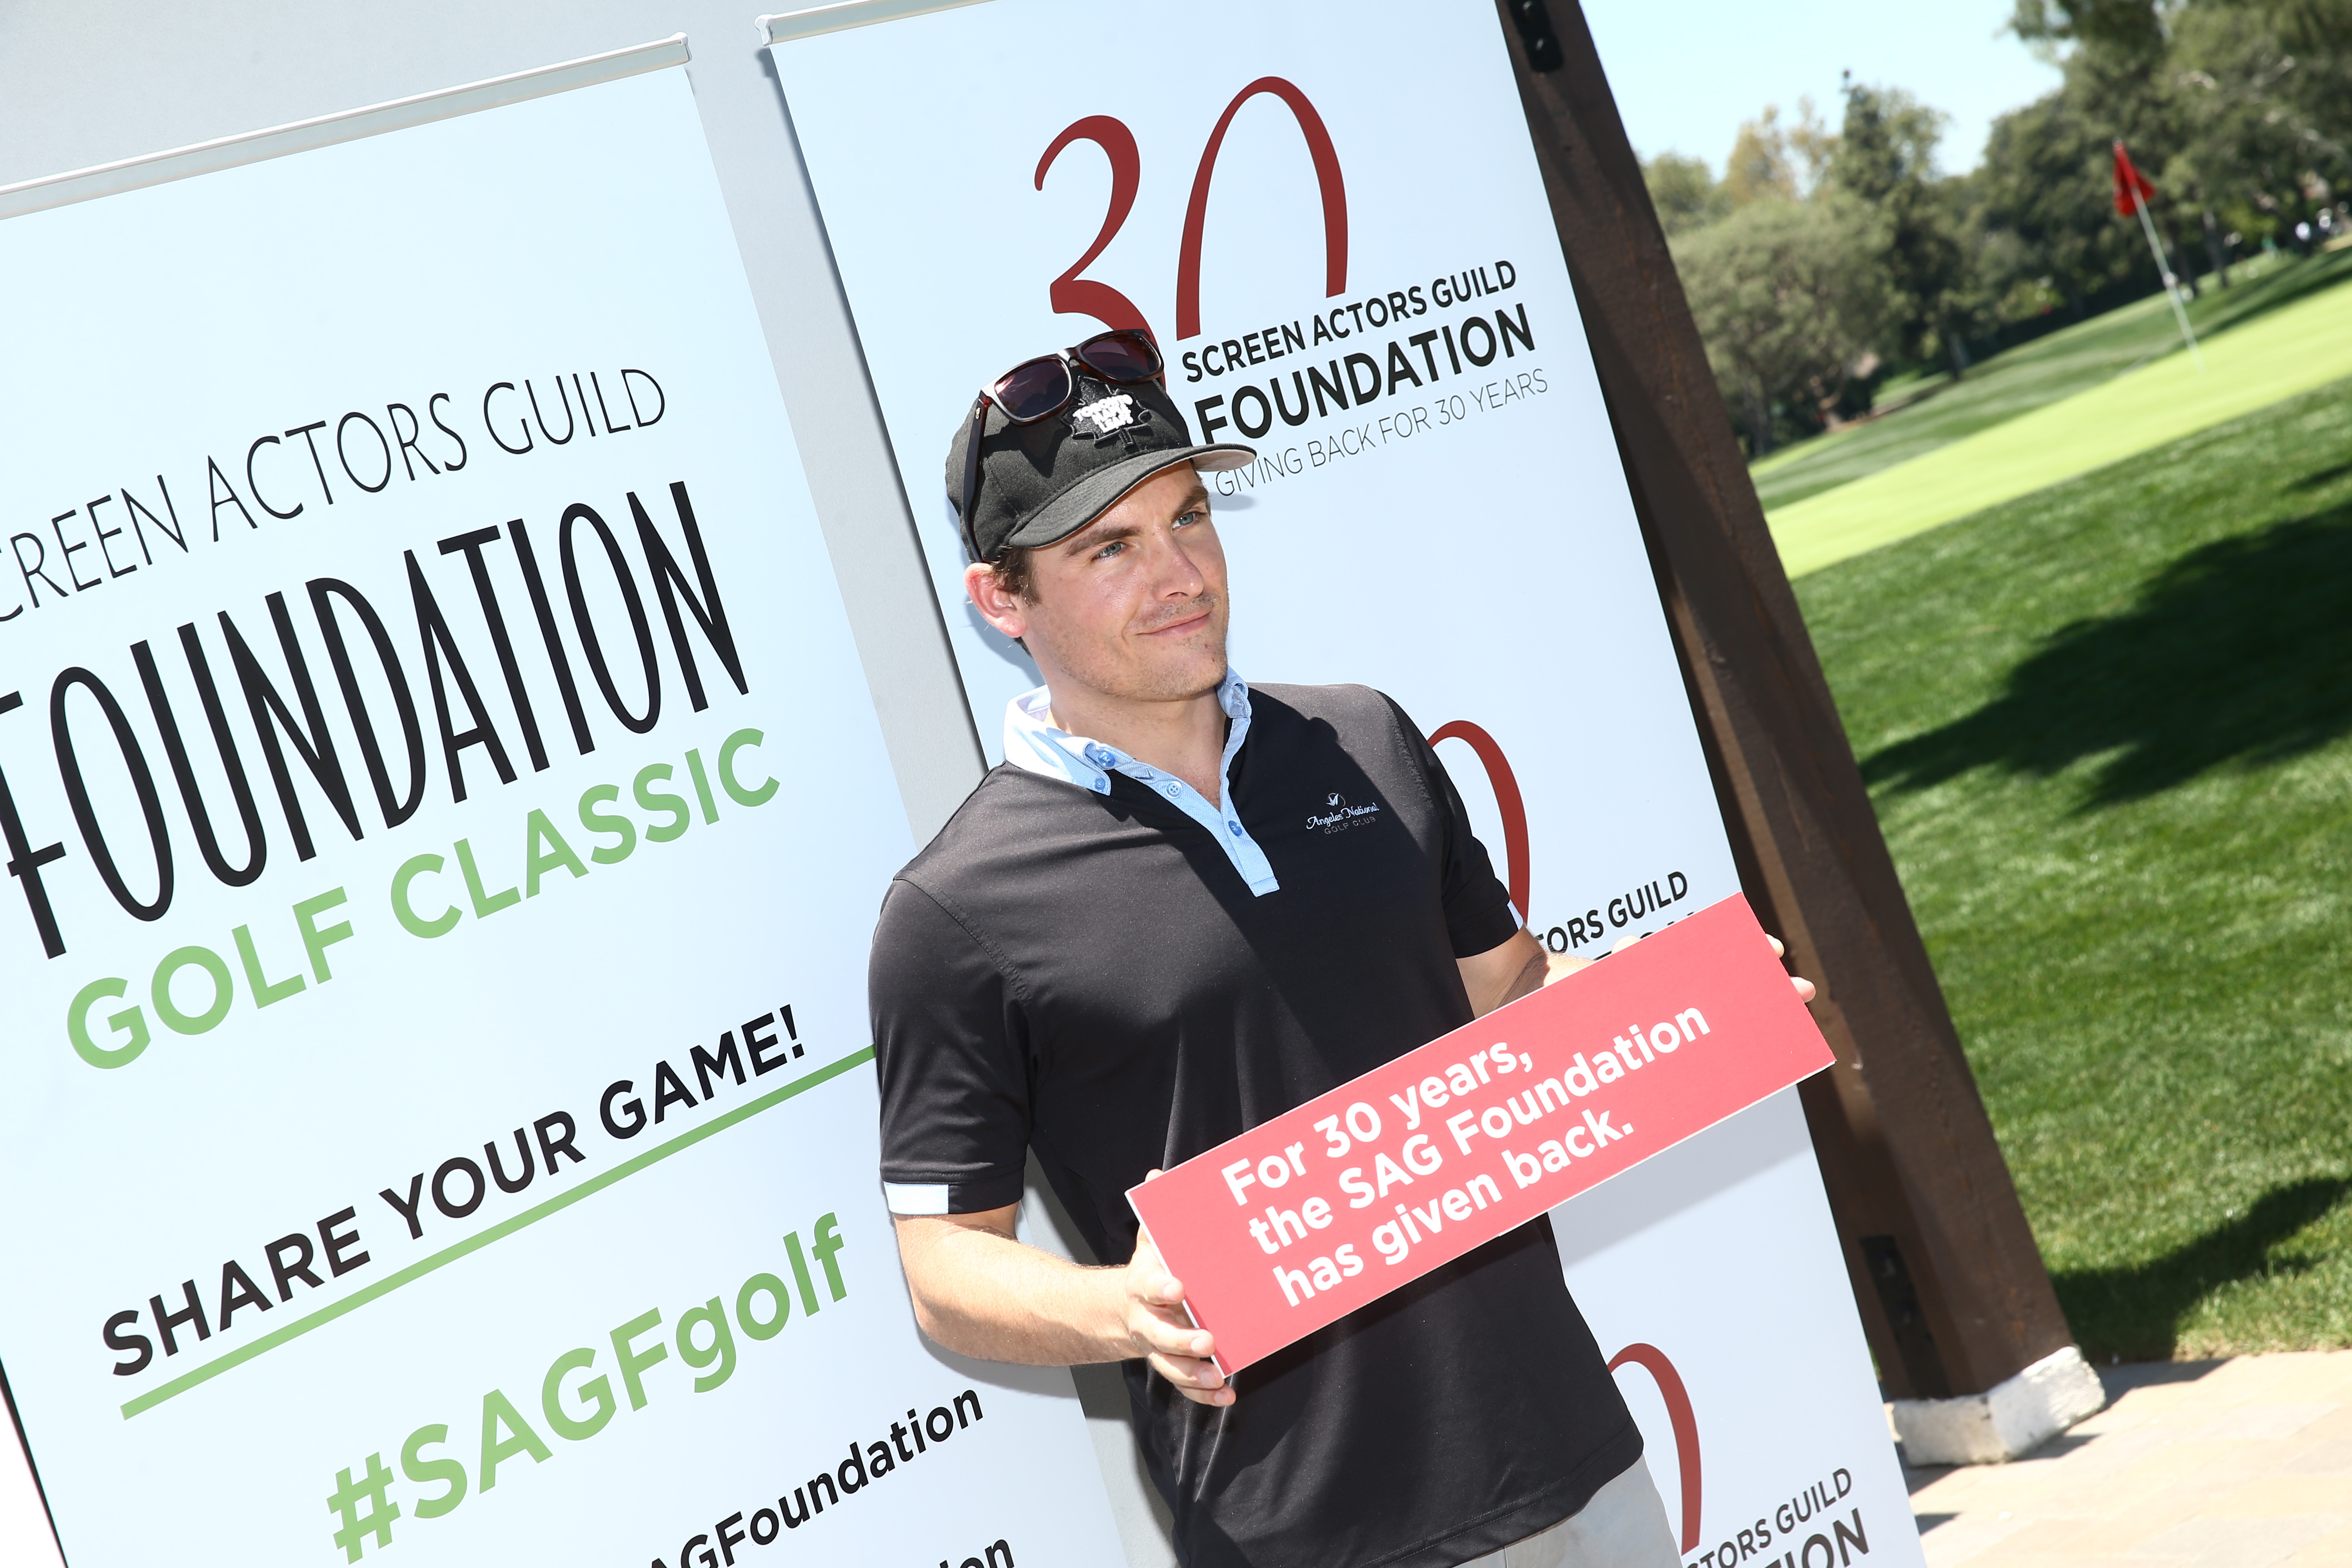 Actor Kevin Zegers plays at the Screen Actors Guild Foundation's 6th Annual Los Angeles Golf Classic on June 8, 2015 in Burbank, California. (Photo by Mark Davis/Getty Images for The Screen Actors Guild Foundation)